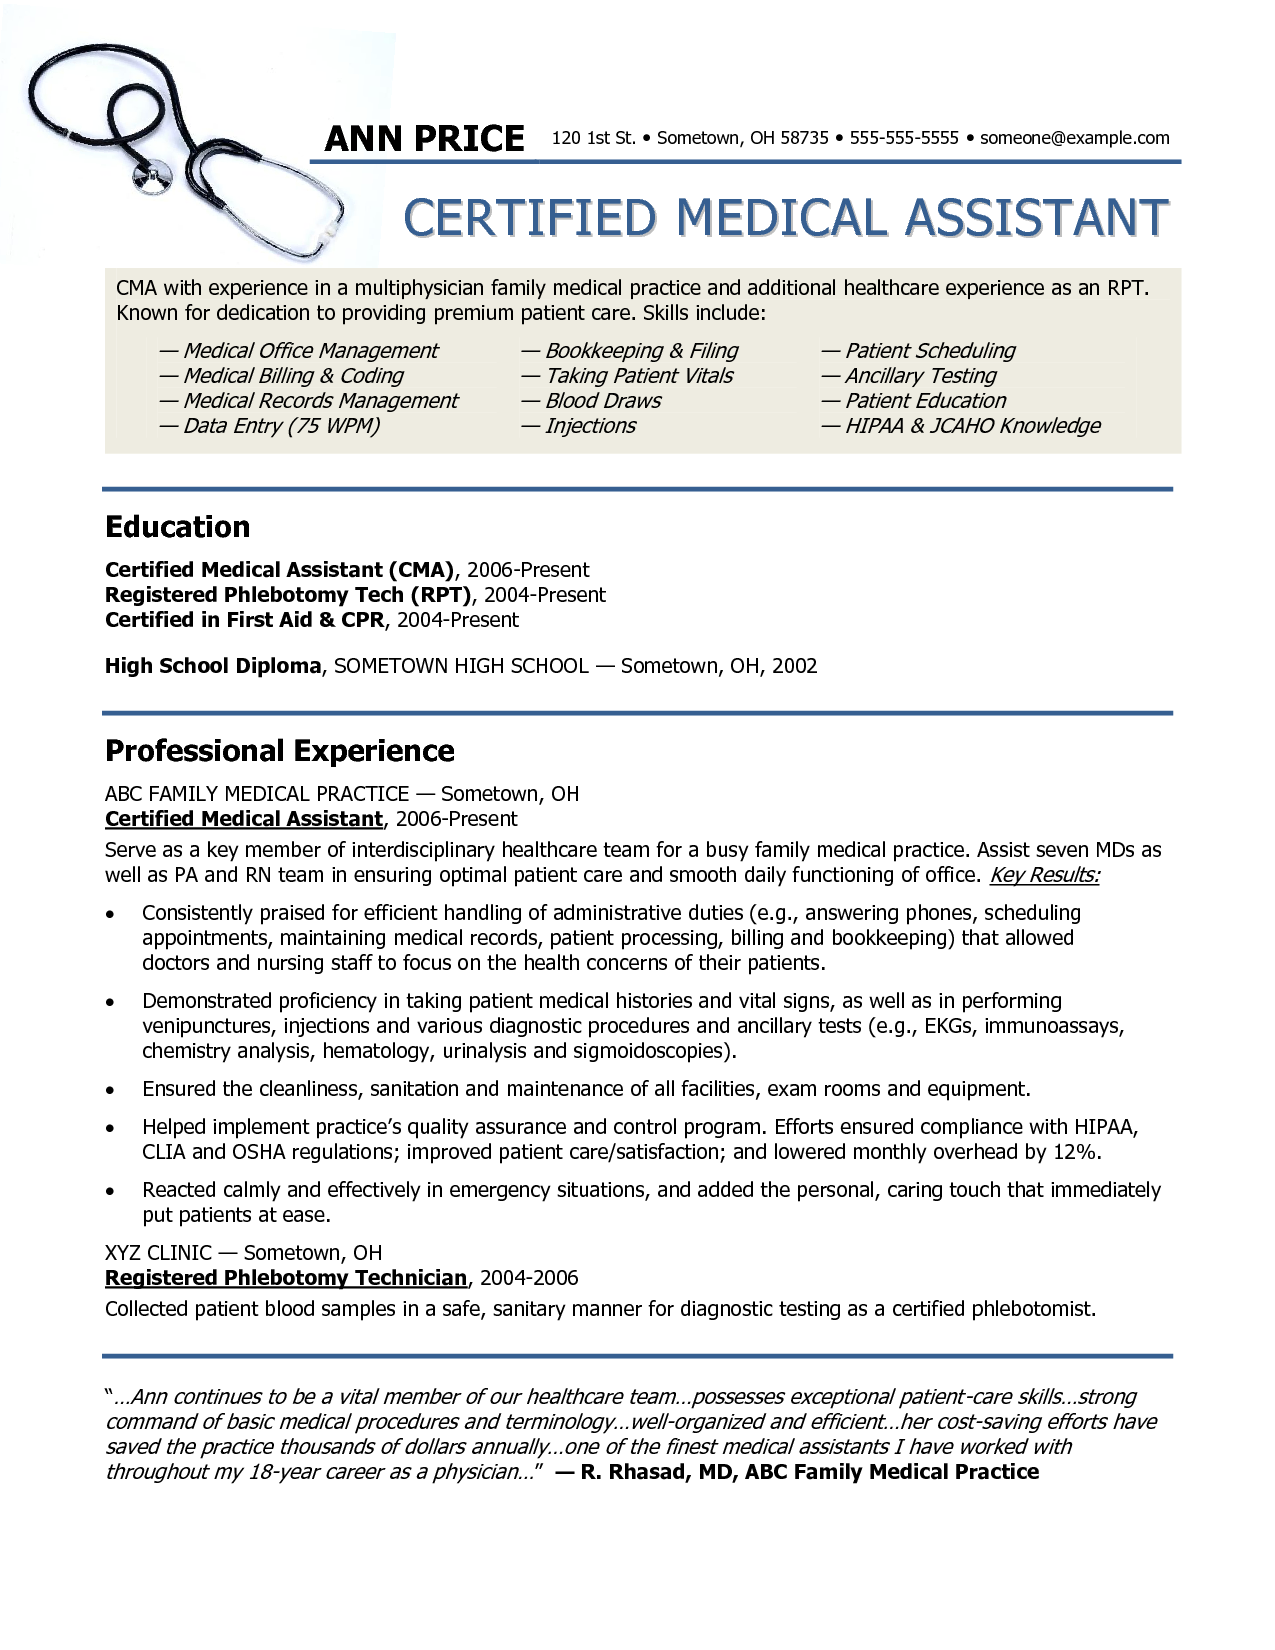 Healthcare Resume Examples Resume Examples Example Of Medical Assistant Resume Regular